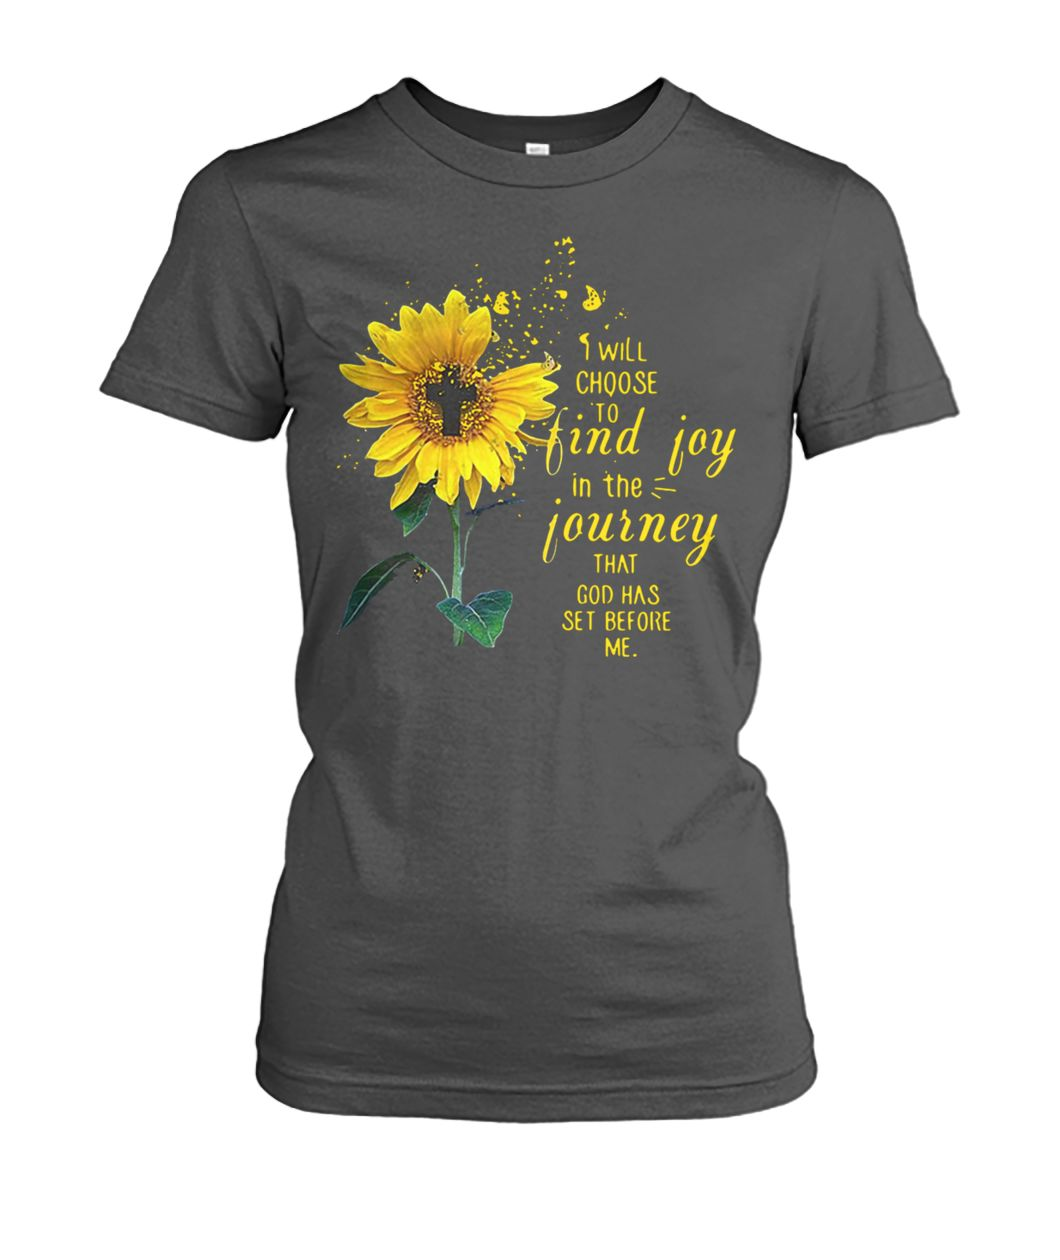 Cross sunflower I will choose to find joy in the journey that God has set before me women's crew tee